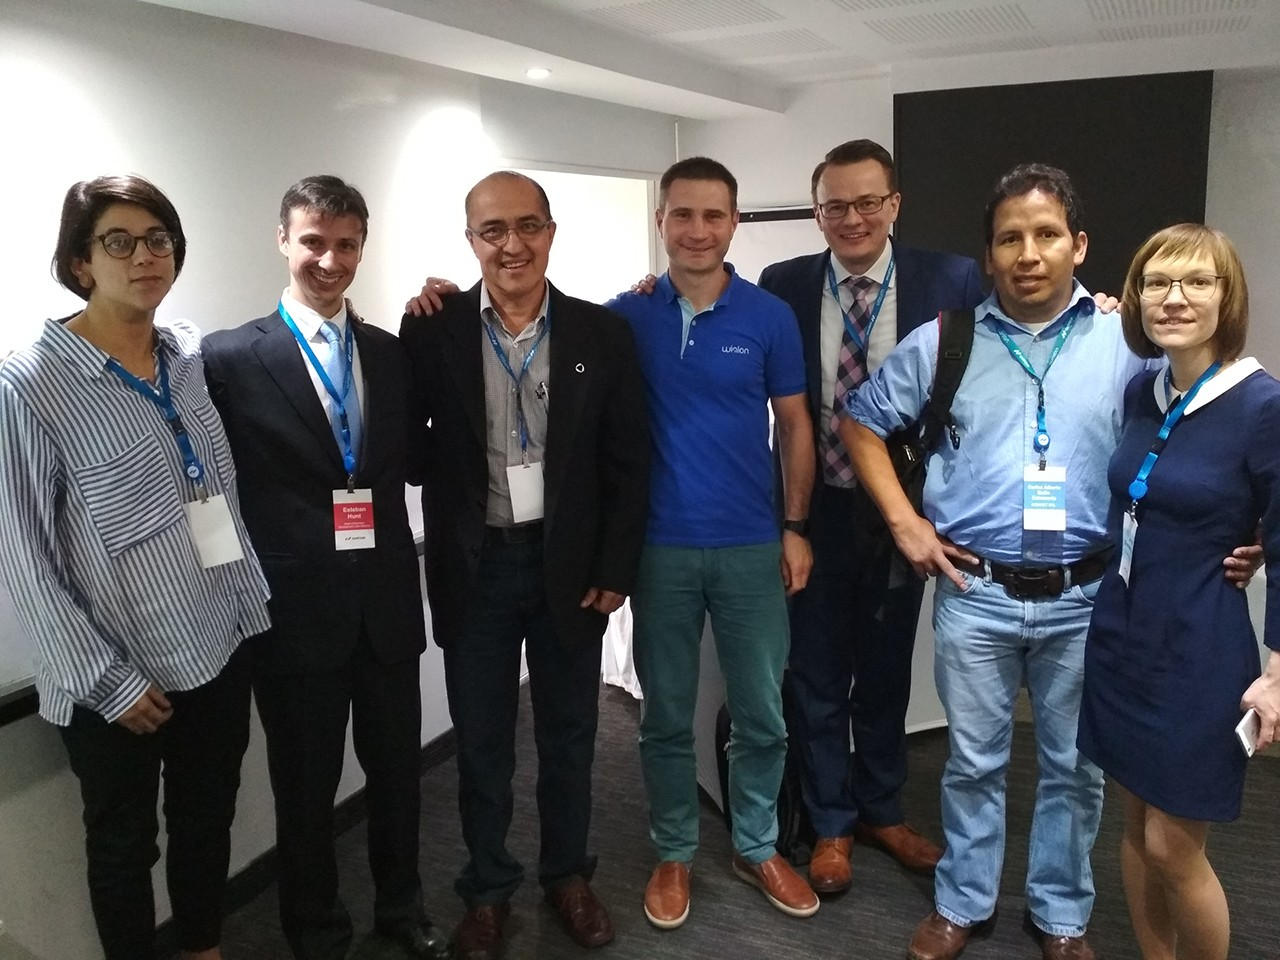 The Gurtam partner conference in Mexico and Expo Seguridad Mexico 2018